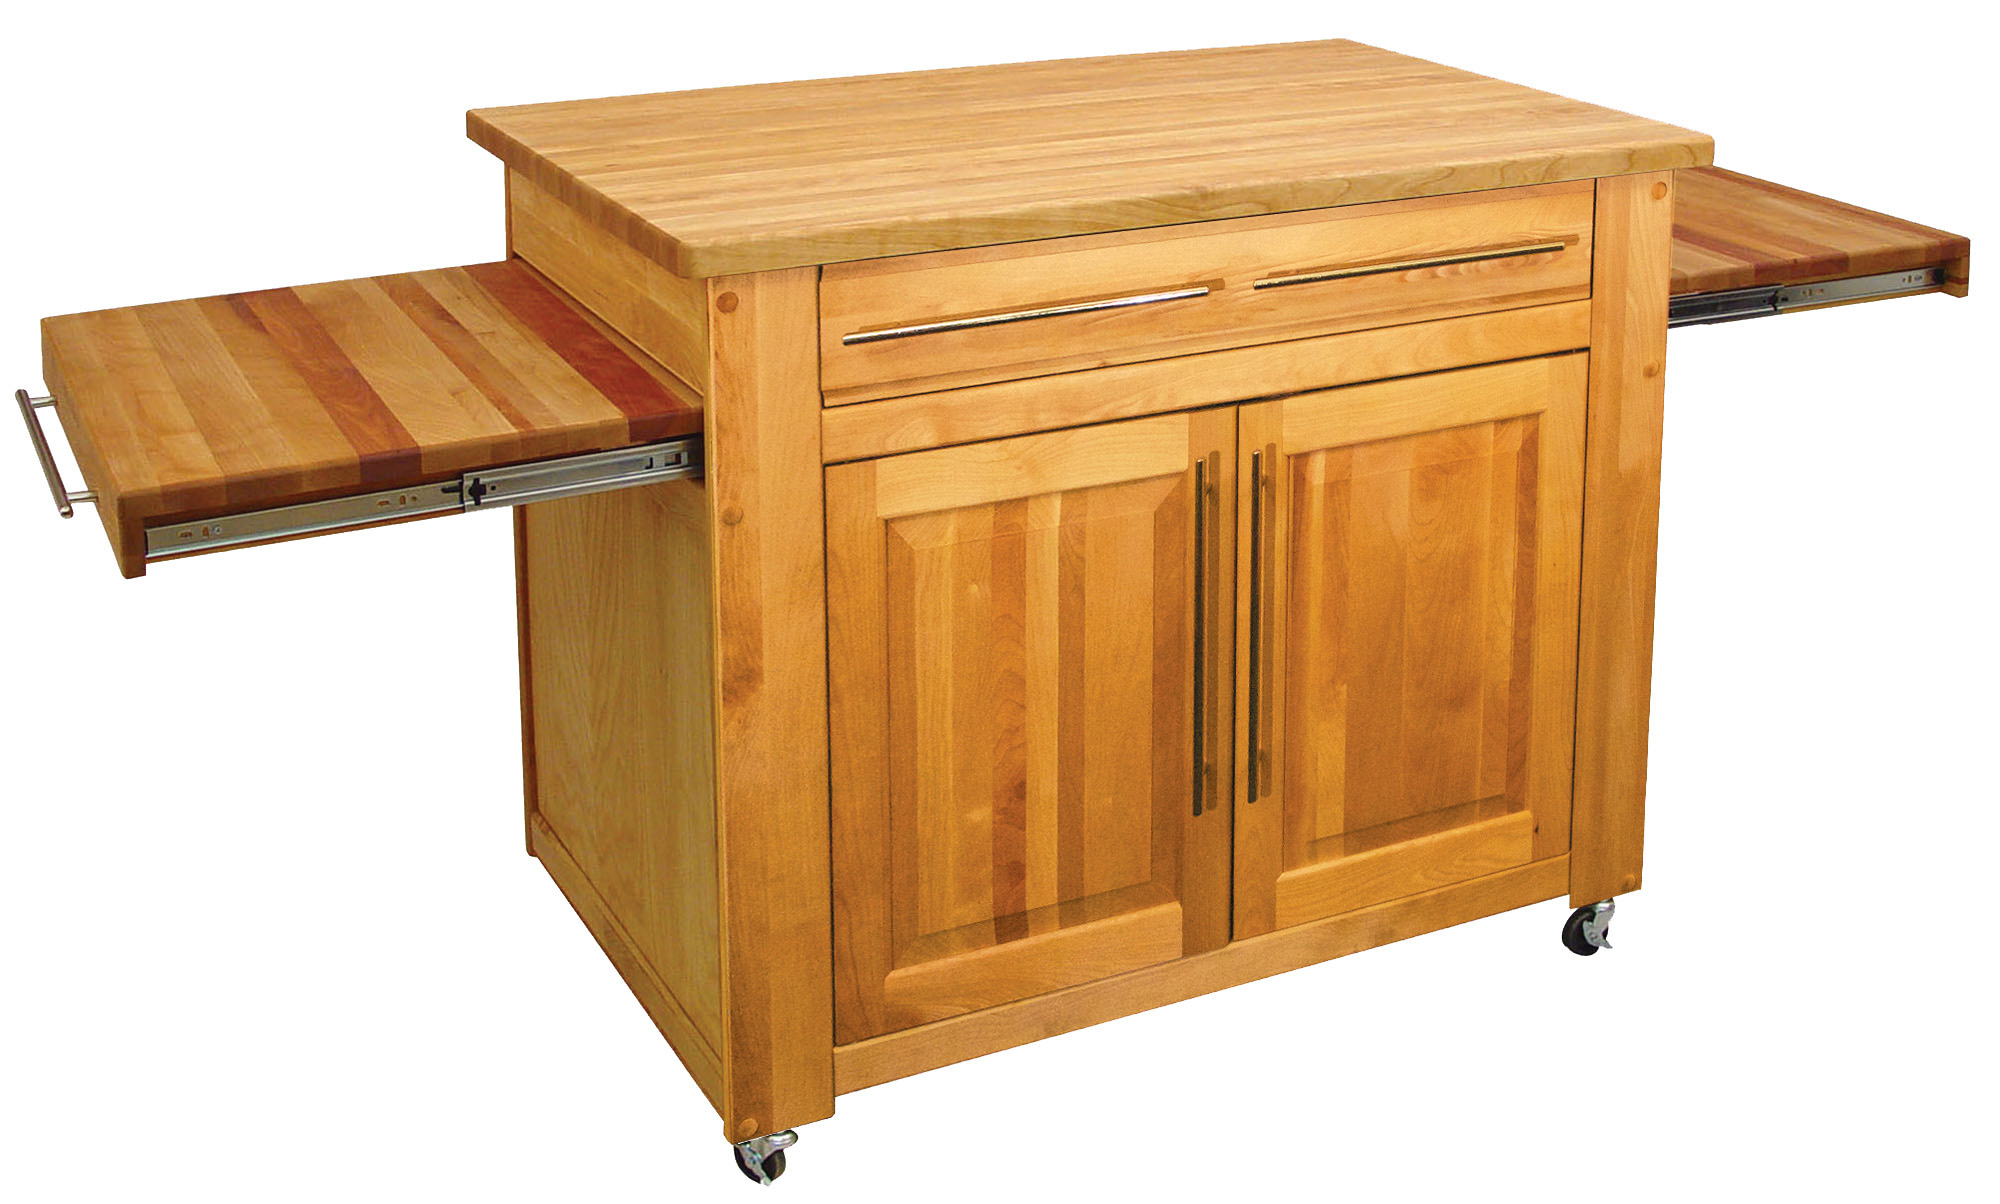 Catskill S Empire Work Center Butcher Block Island Pull Out Leaves